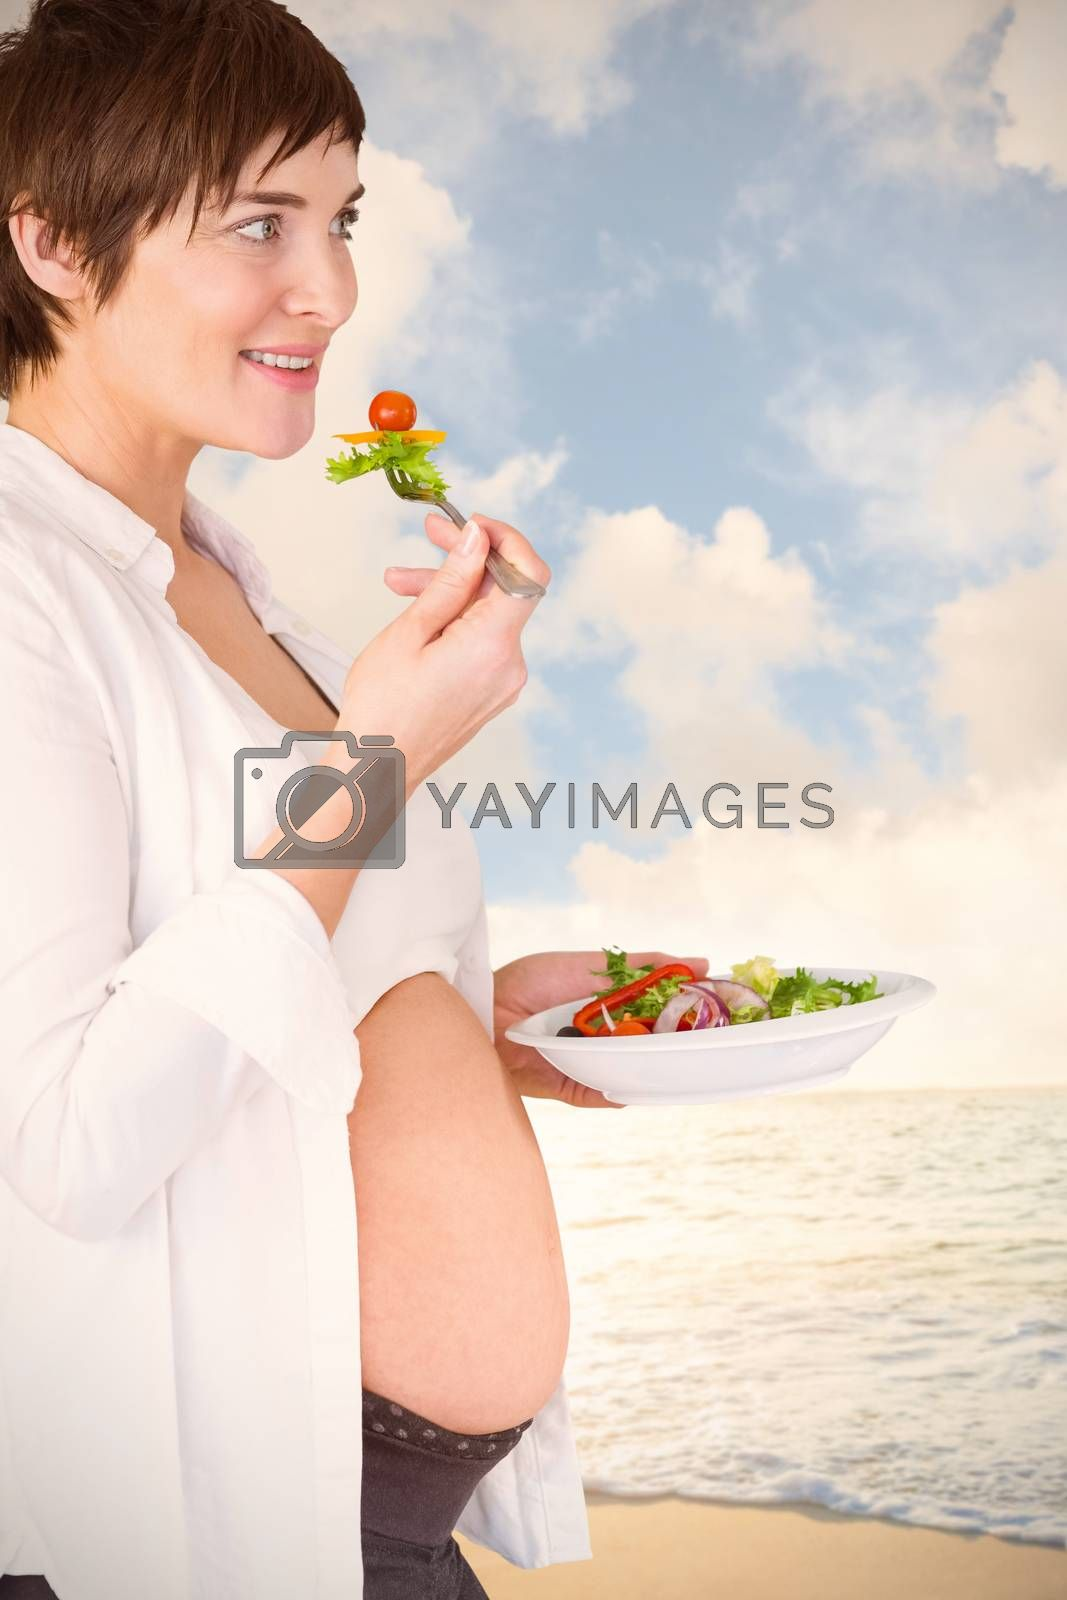 Smiling pregnant woman having salad against surf board standing on the sand